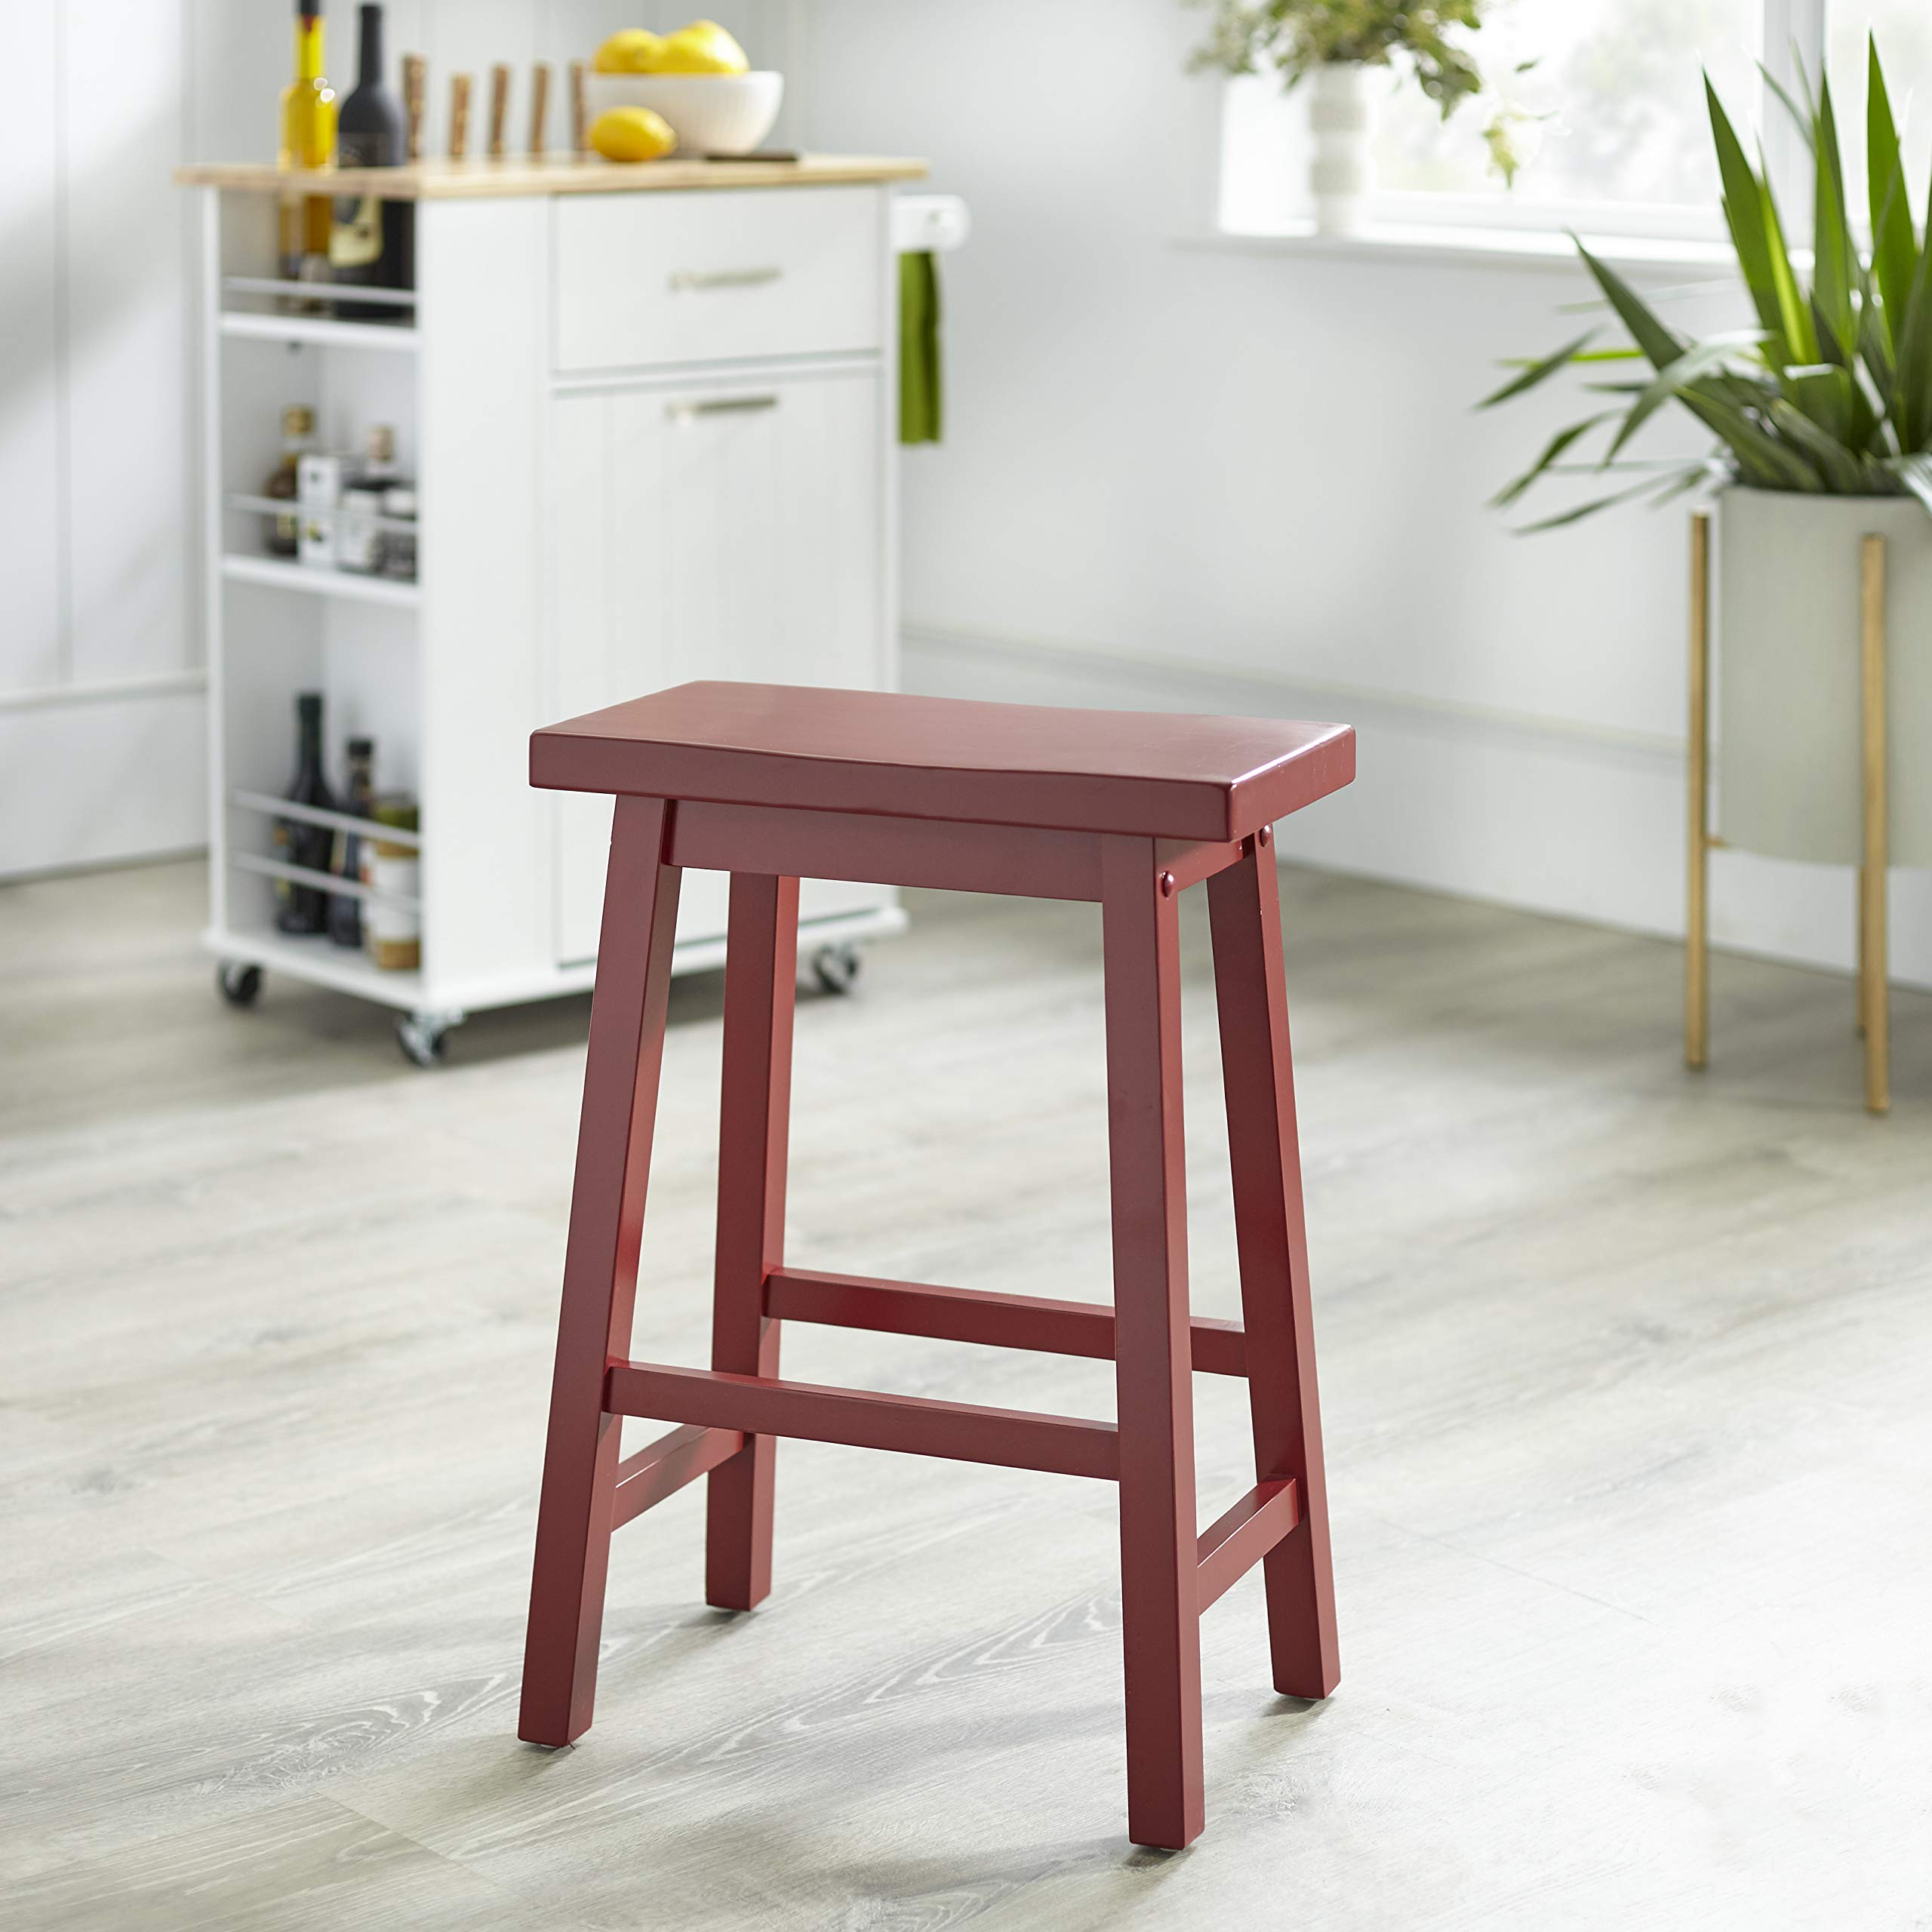 Target Marketing Systems 24-Inch Arizona Wooden Saddle Stool, Red by Target Marketing Systems